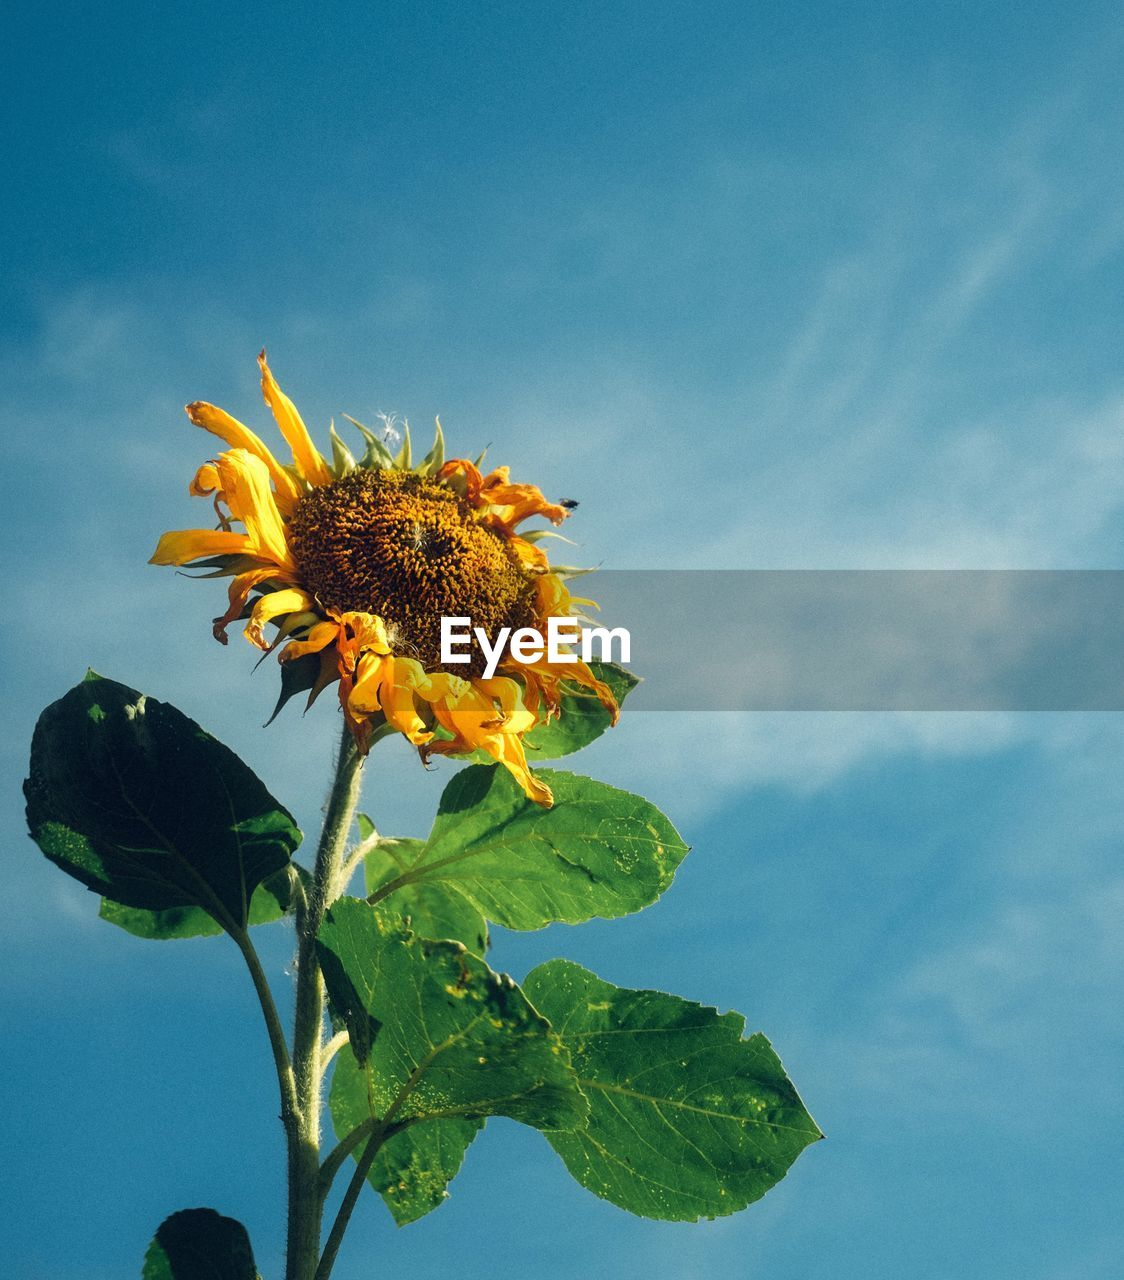 Low angle view of sunflower blooming outdoors